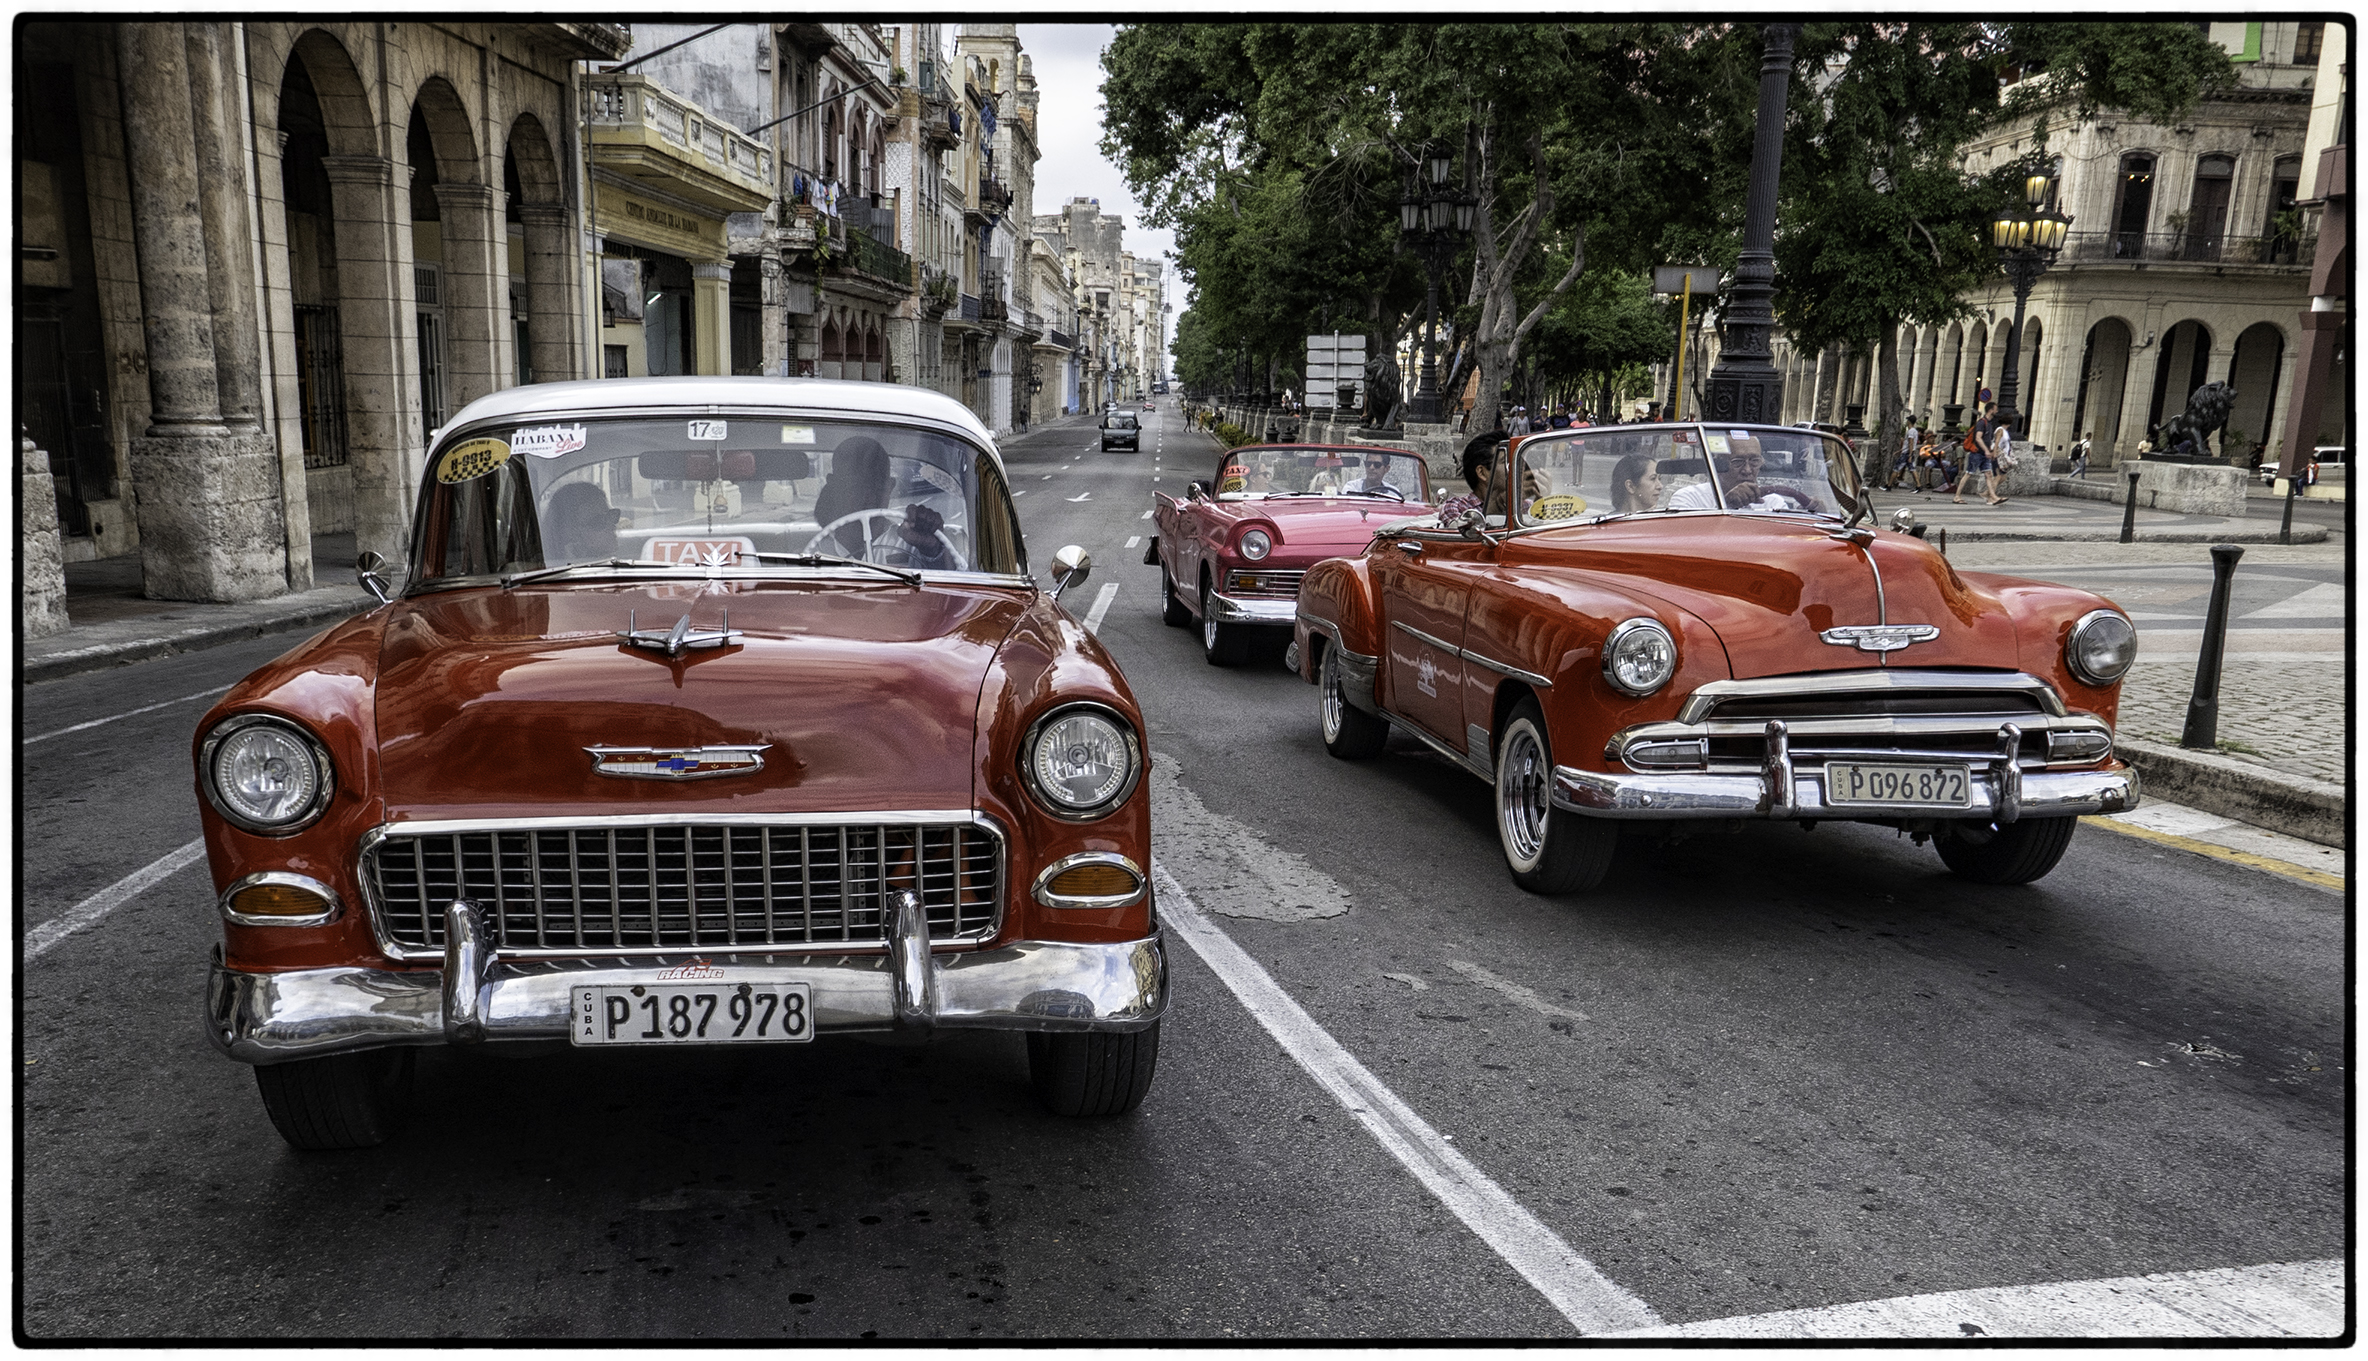 1955 and 1952 Chevys, 1957 Ford